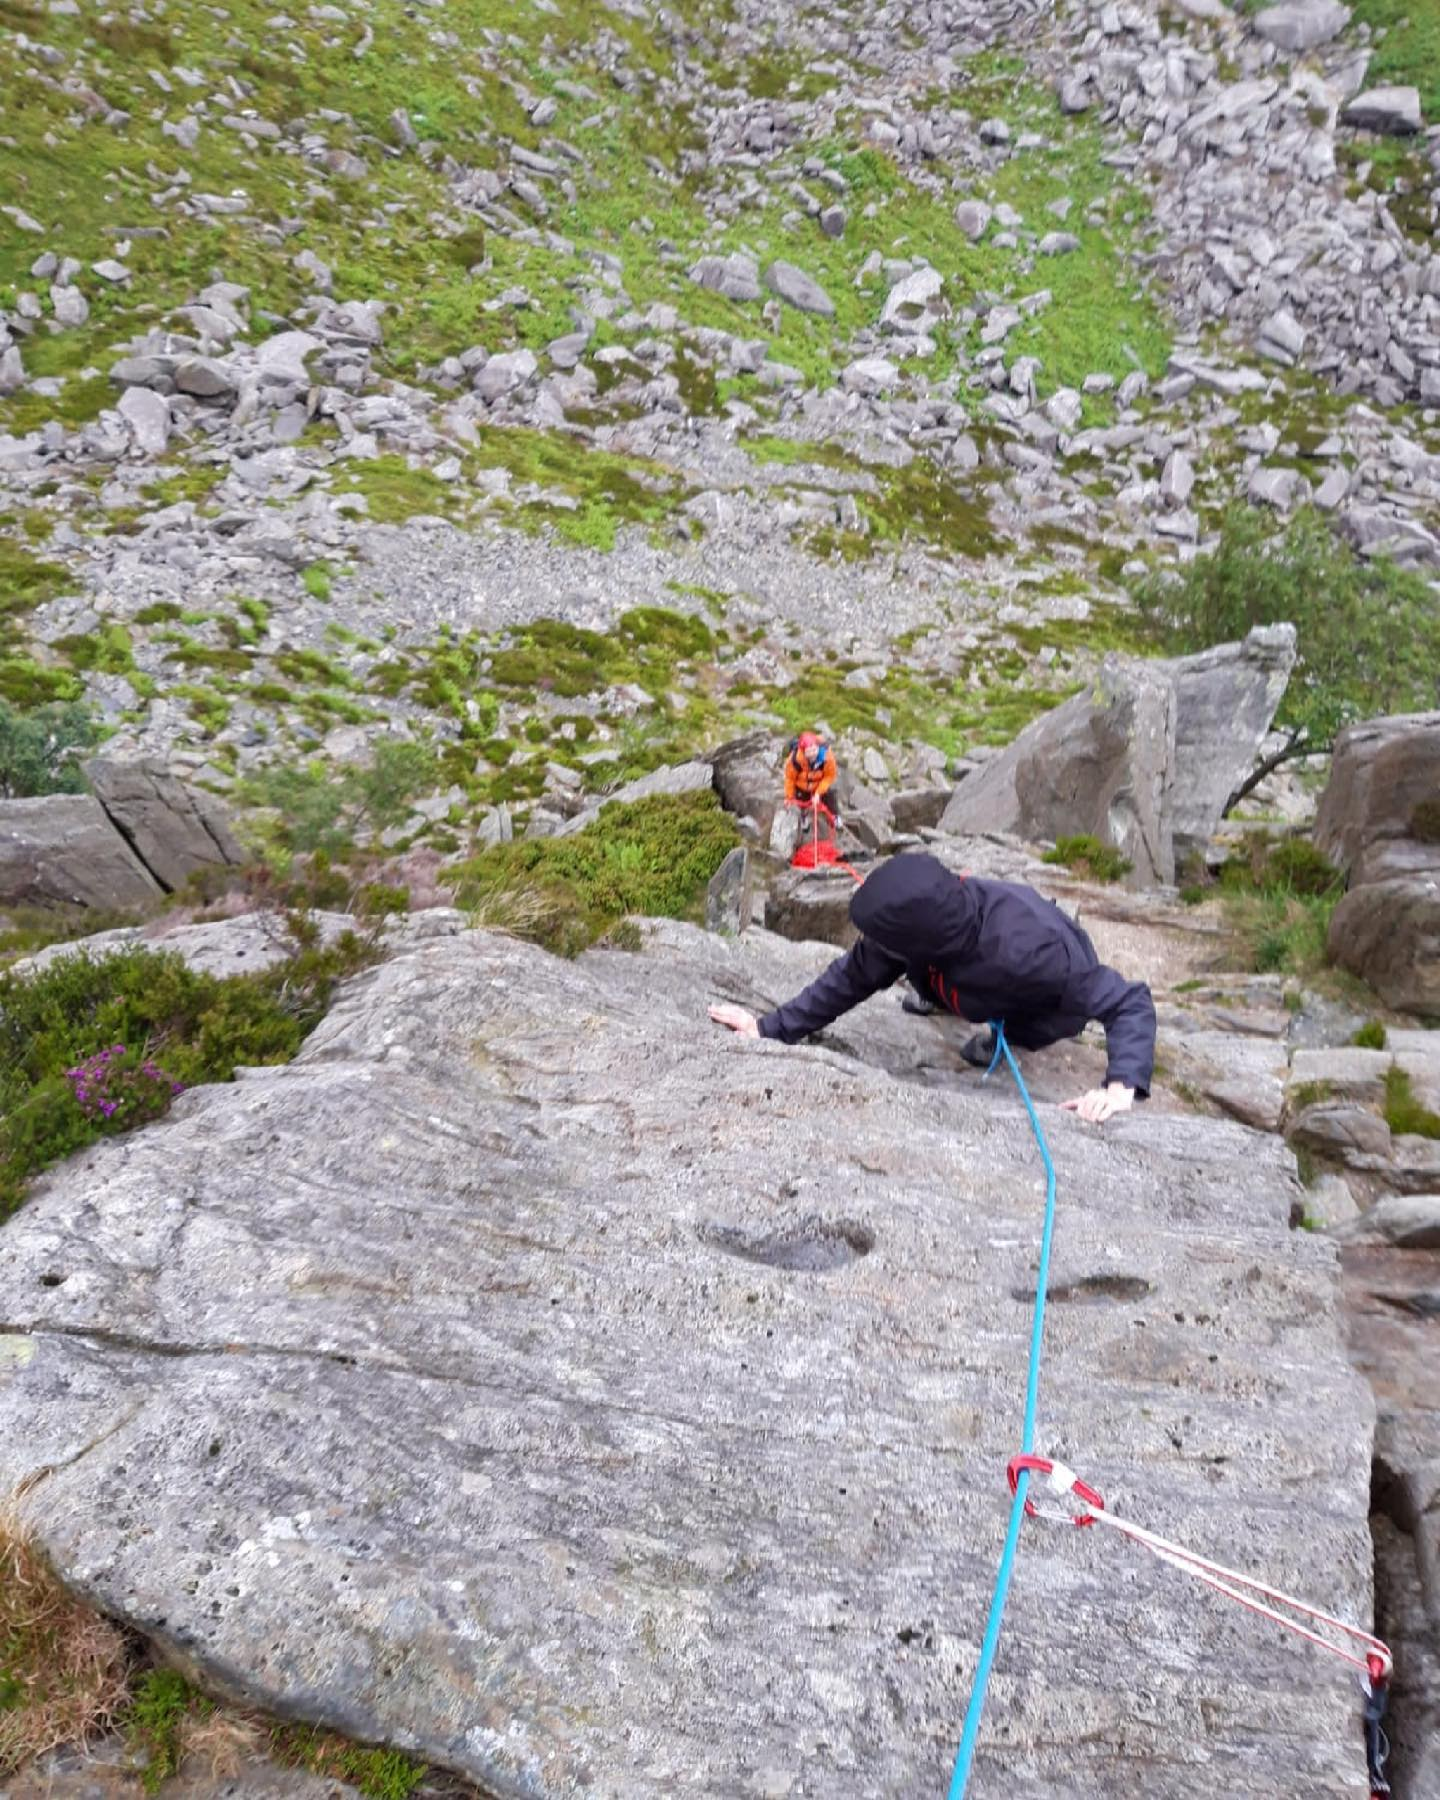 Join us for rock climbing in the Peak District this Sunday in the Goyt Valley, just 45 minutes from south Manchester.  Join our friendly, qualified instructor for this beginners session, where you'll learn the basics of ropework, before climbing under their supervision to the Peak District's eighth highest point. Then you'll need to be brave and challenge yourself to abseil back down (or walk down the path instead if you prefer!). Suitable for all from 10+, we hope to see you here.  More info and booking at www.wilderness-development.com, link in our bio 🧗‍♀️⛰🧗‍♀️ . . . #wildernessdevelopment #smallbusiness #rockclimbing #climbing #scrambling #abseiling #trysomethingnew #peakdistrict #peakdistrictnationalpark #peakdistrictclimbing #mountainsfellsandhikes #roamtheuk #outdoorpursuits #outdooradventures #outdooractivities #nationalparksuk #booknow